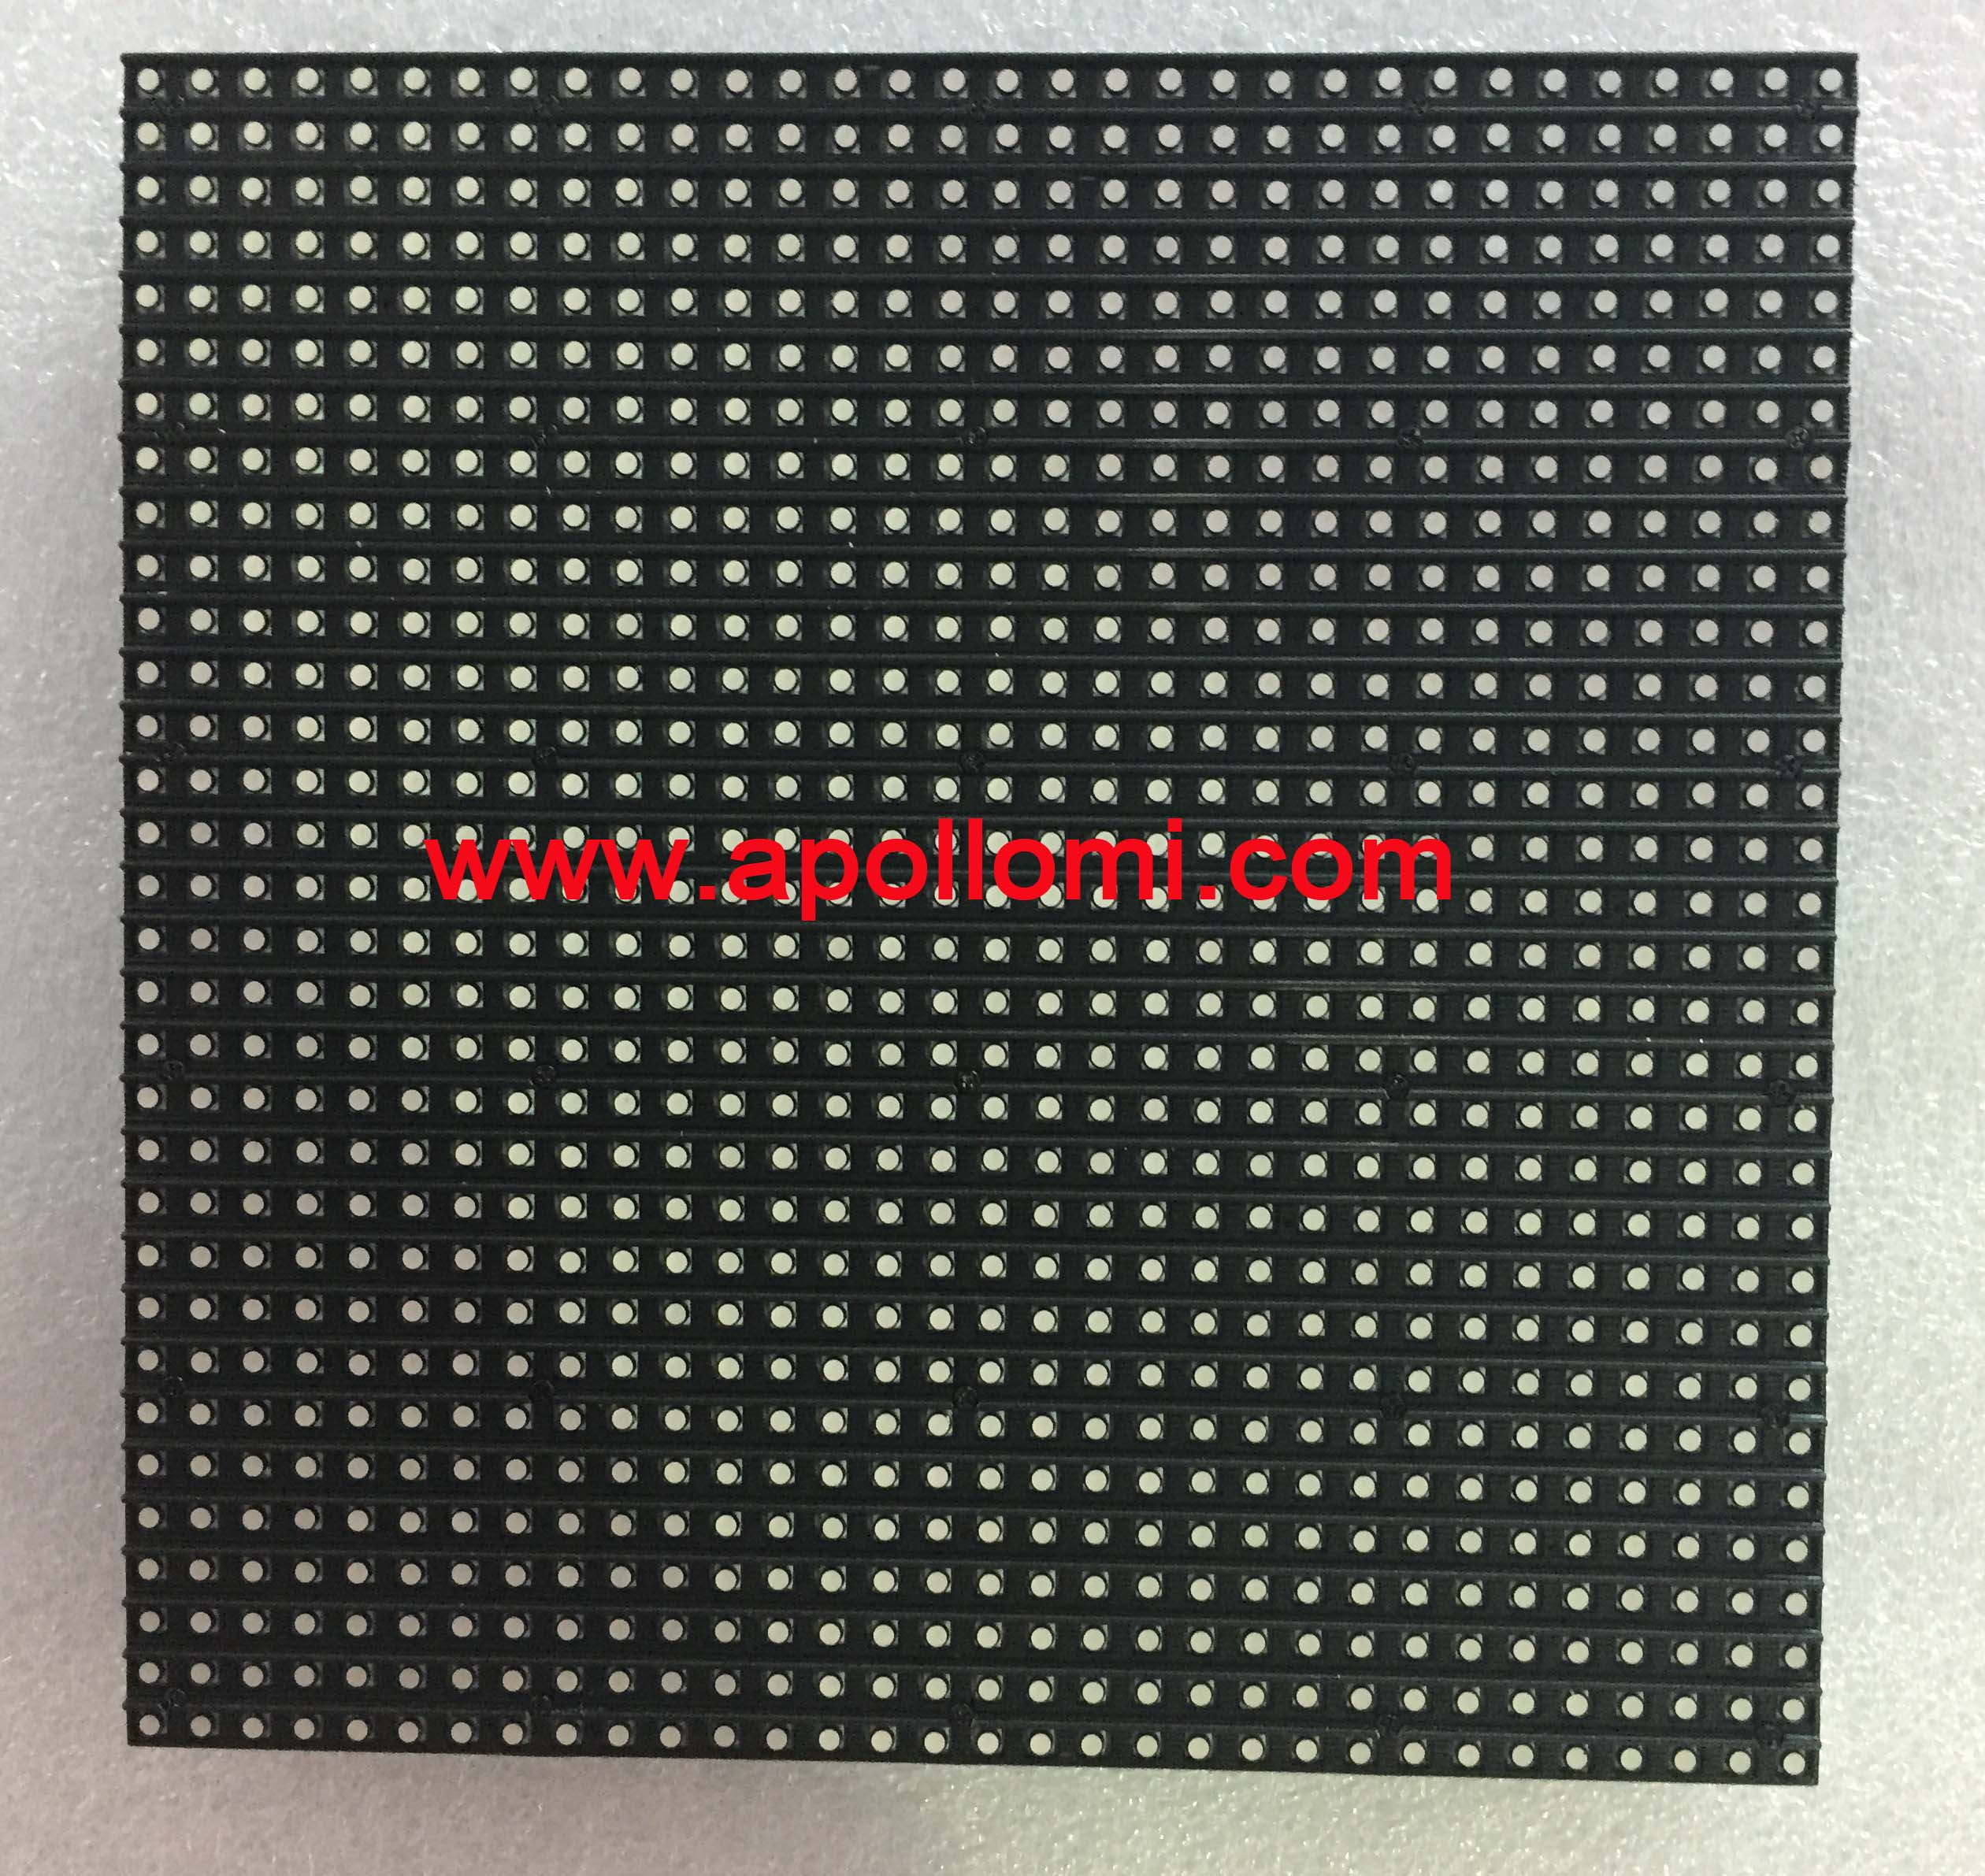 Ph5mm SMD outdoor full color led screen module